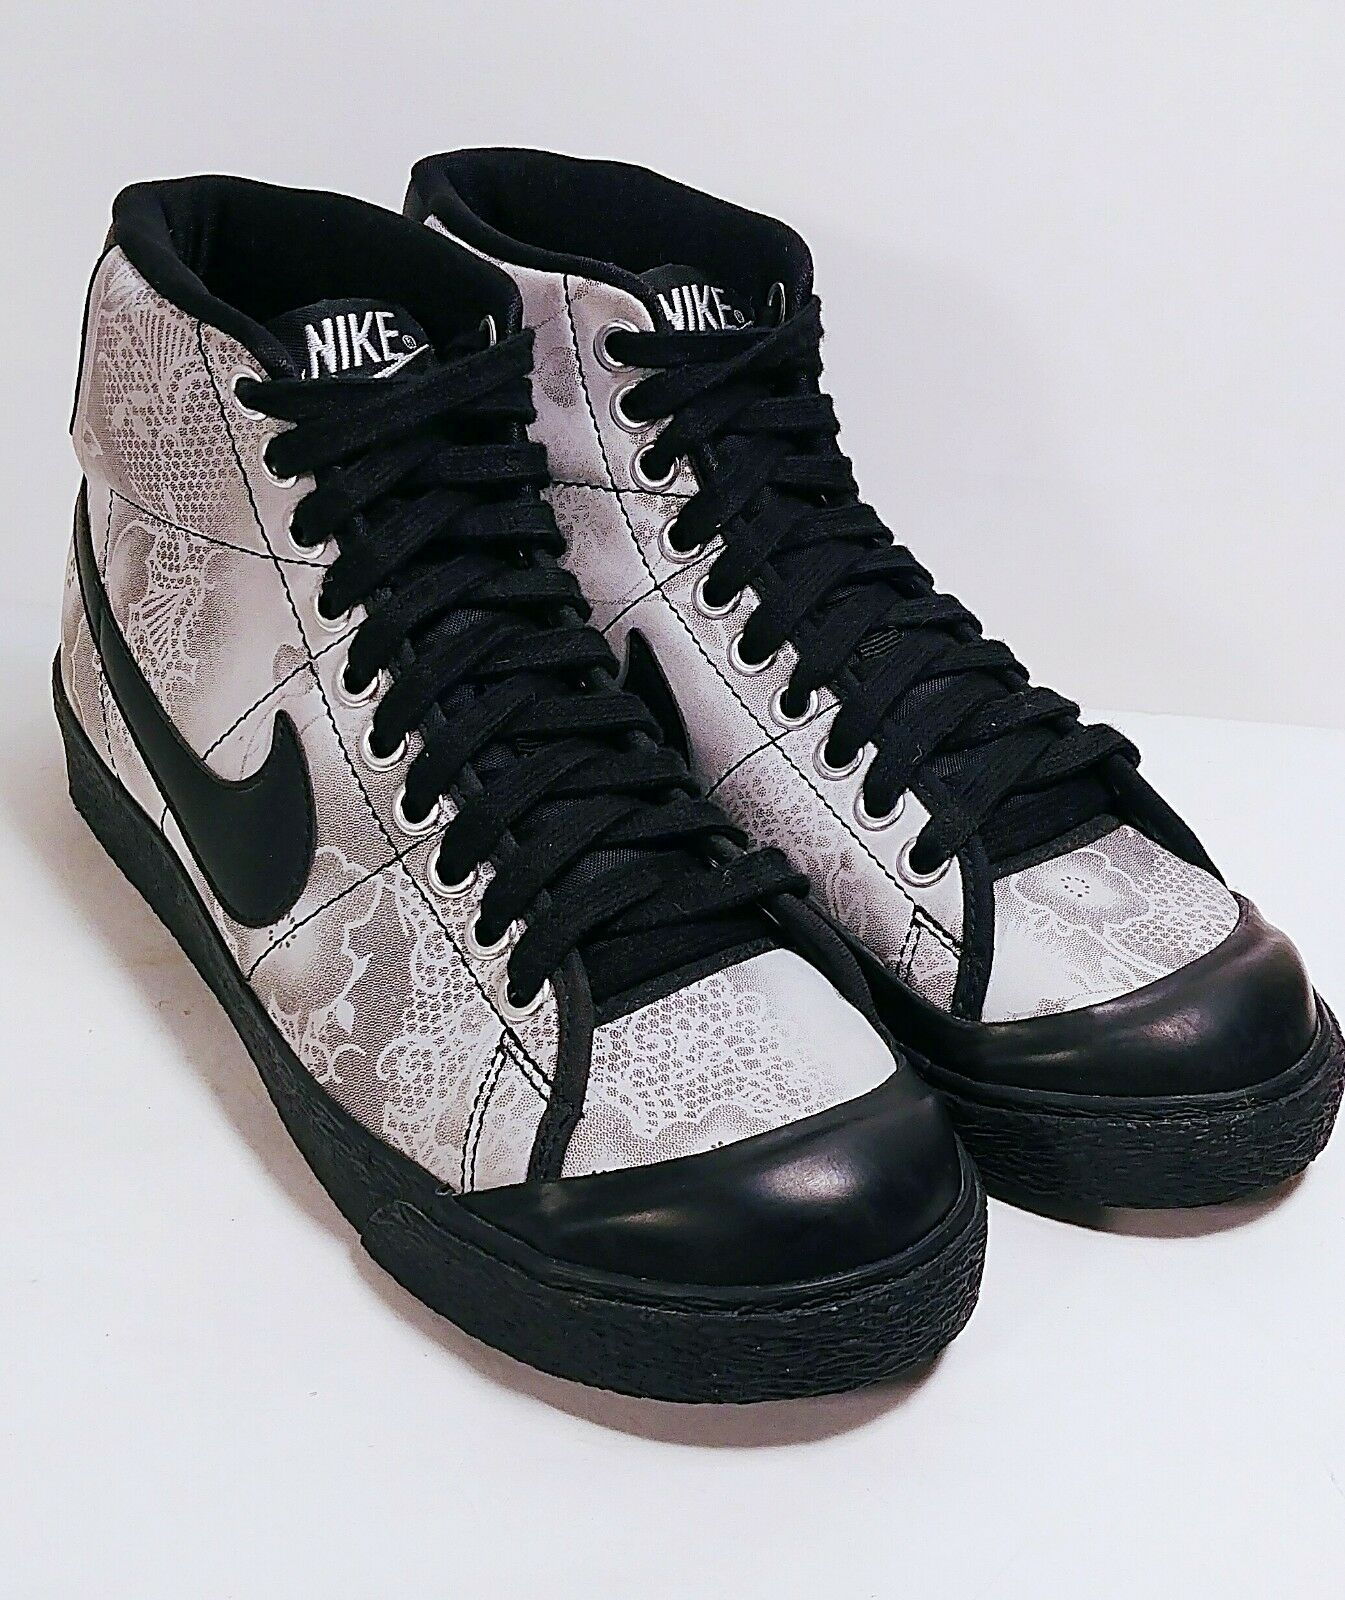 NIKE ALL COURT 316482-003 BASKETBALL SHOES WOMEN'S SNEAKERS Blazers SIZE 7 NWOB